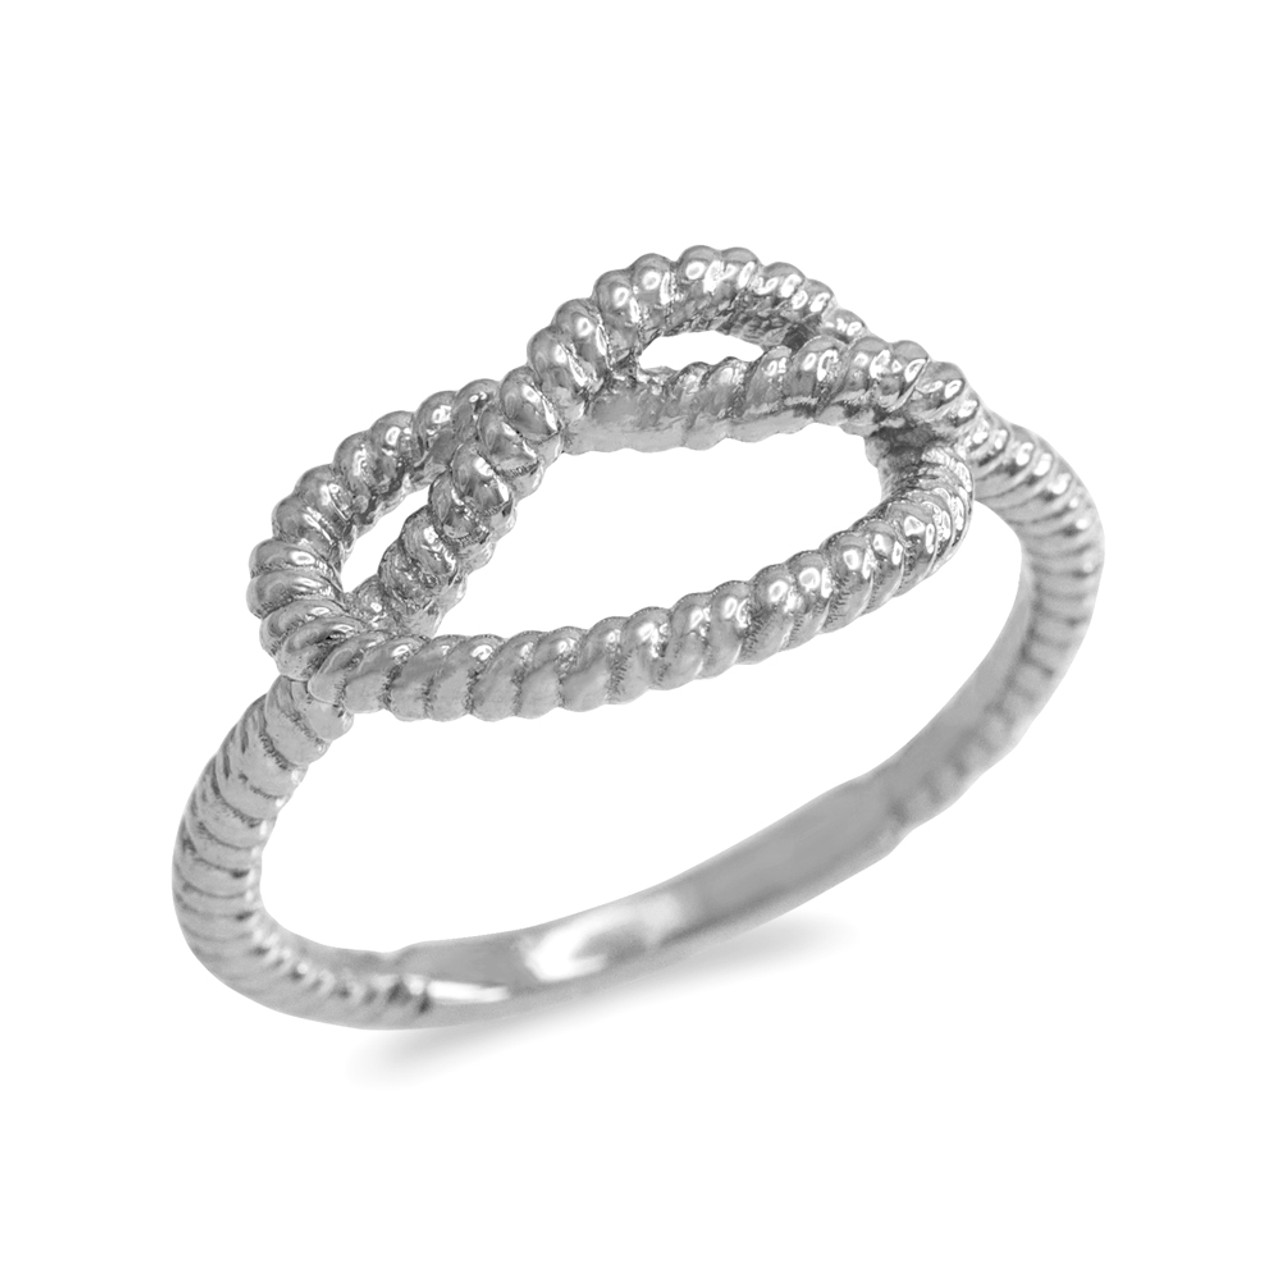 White Gold Knot Promise Ring